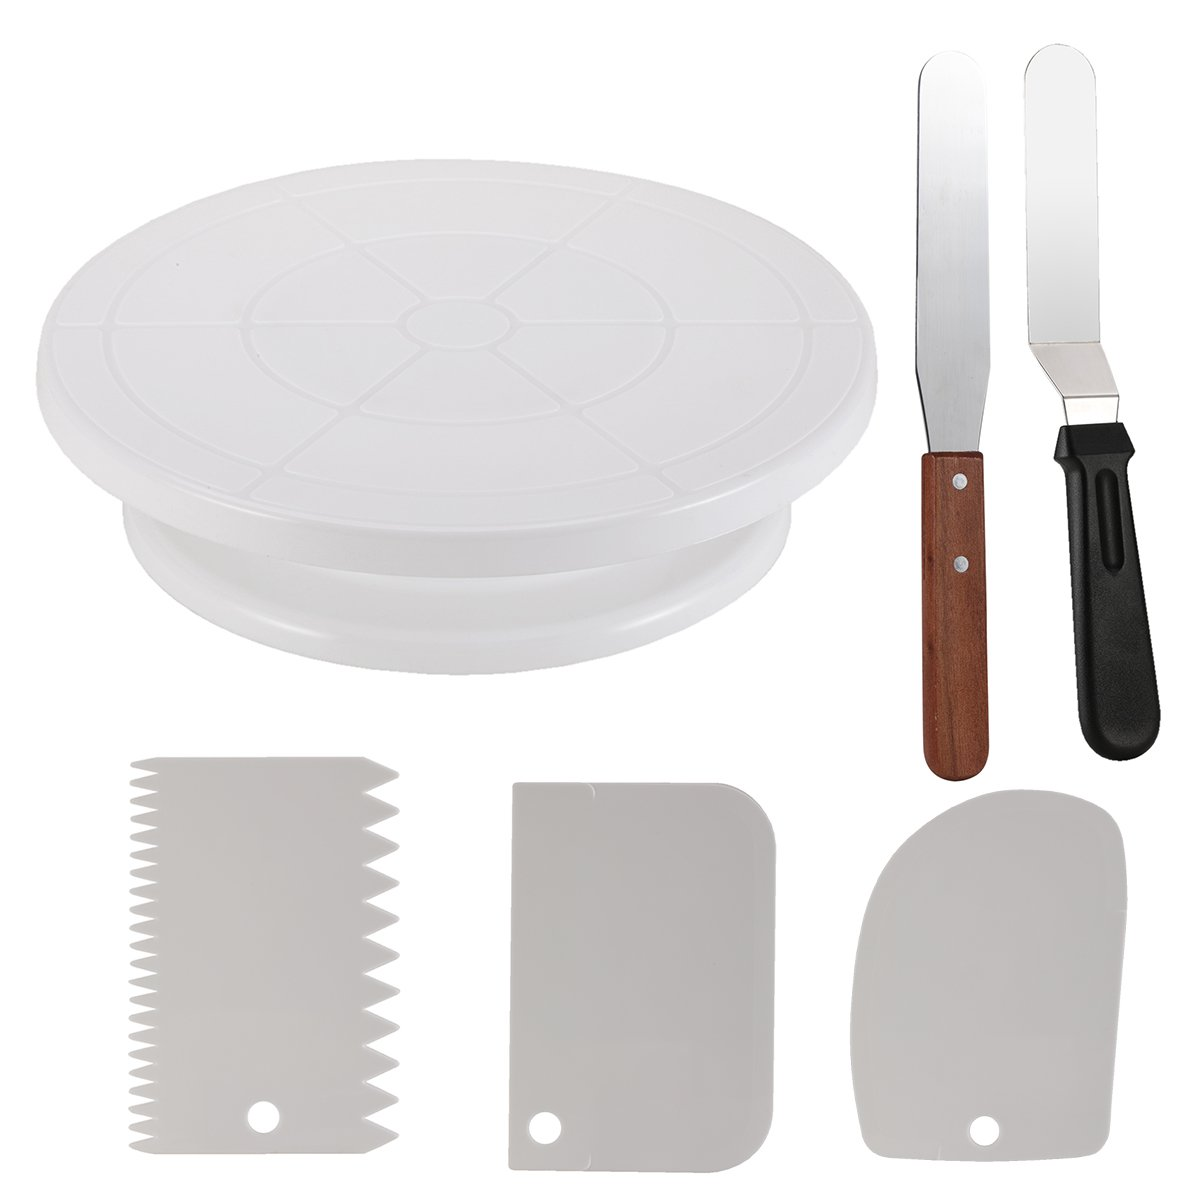 Cake Decorating Turntable,Thsinde Cake Decorating Supplies With Decorating Comb/Icing Smoother(3pcs),2 Icing Spatula With Sided & Angled by Sindh (Image #1)